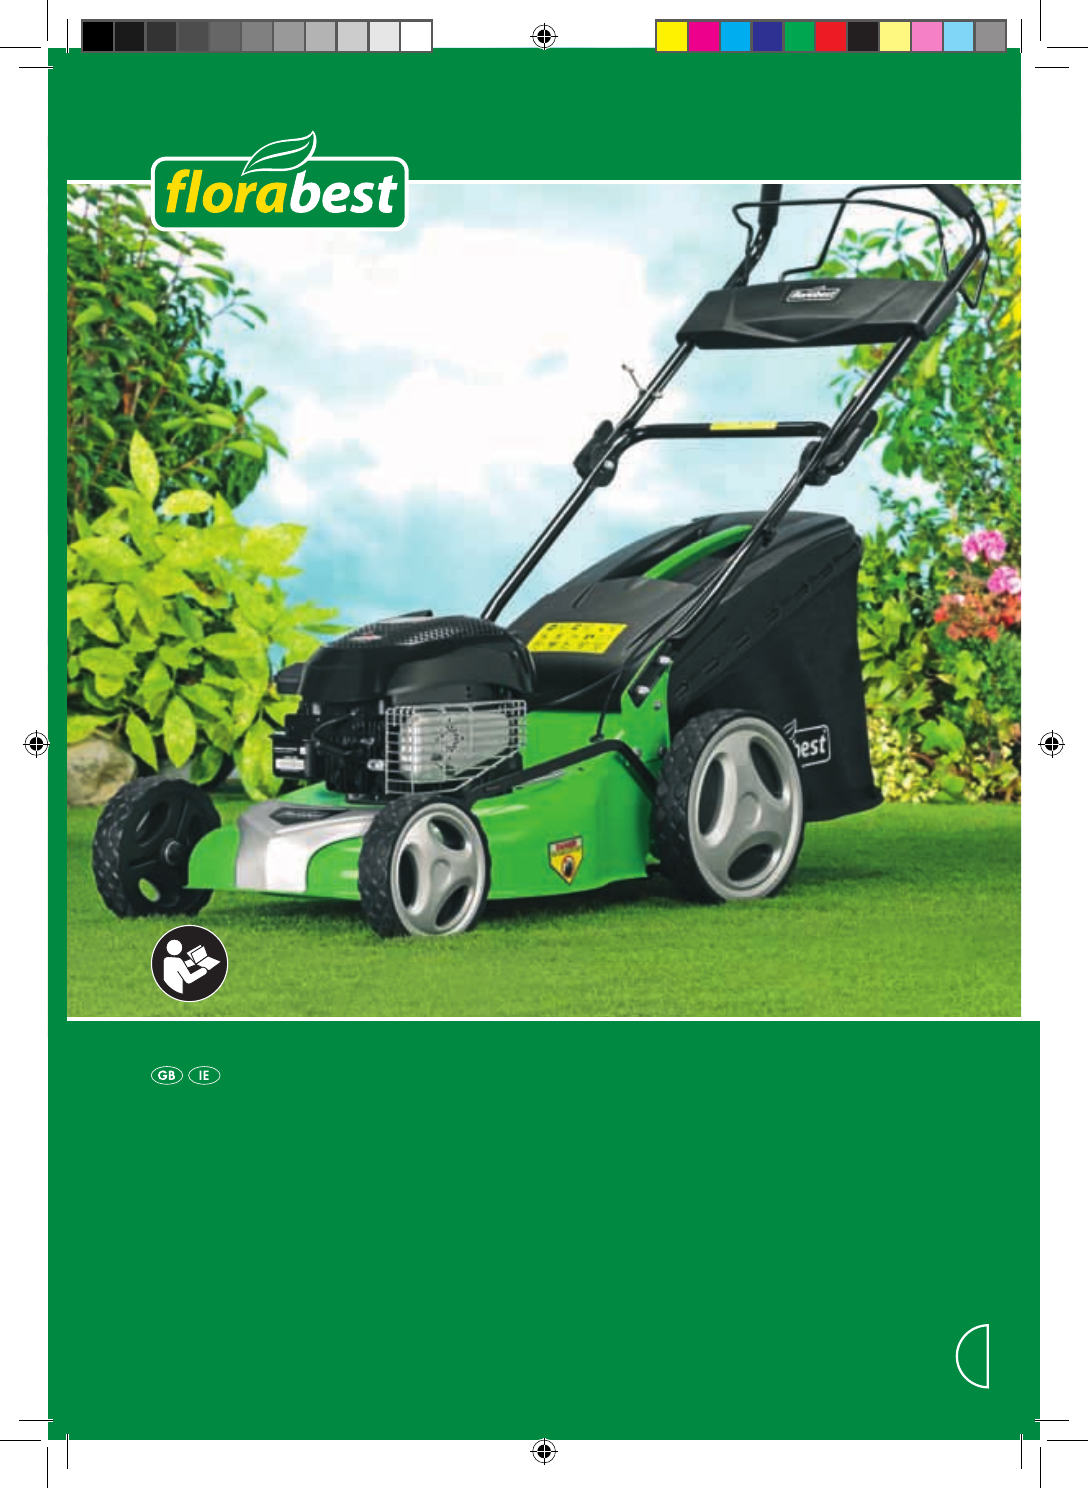 florabest fbm 550 a1 user manual 28 pages rh manualsdir com Manual Lawn Aerator Tool Manual Aerator Home Depot